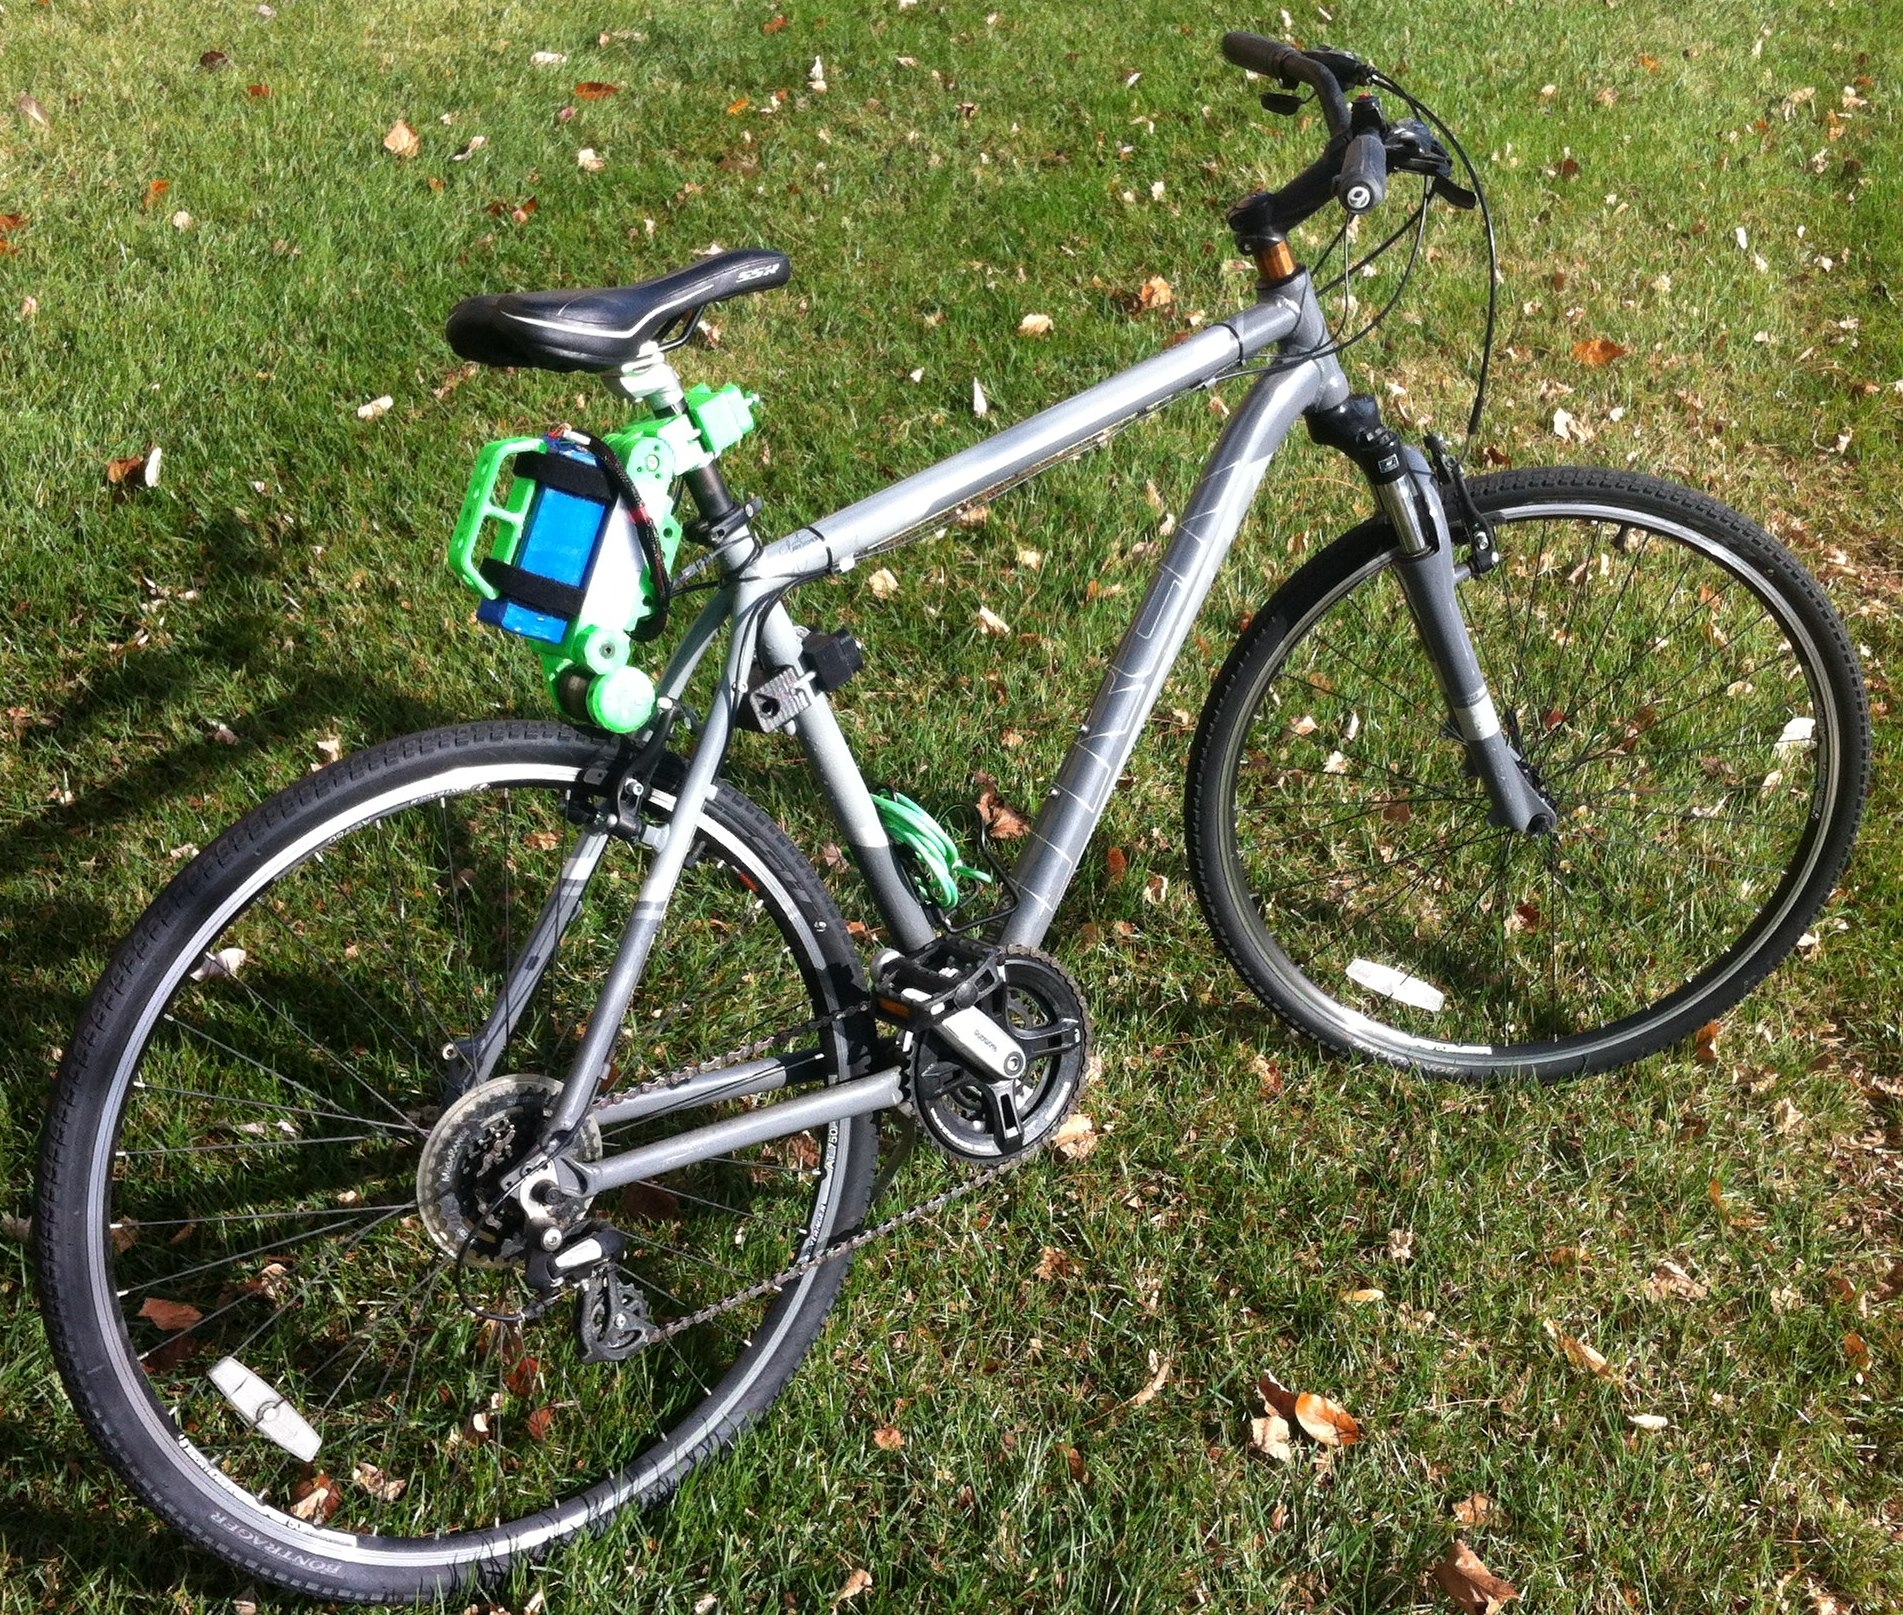 Electric Motor Kits For Push Bikes: The 'Bicycle BoosterPack' Kit: A New Ultralight Portable